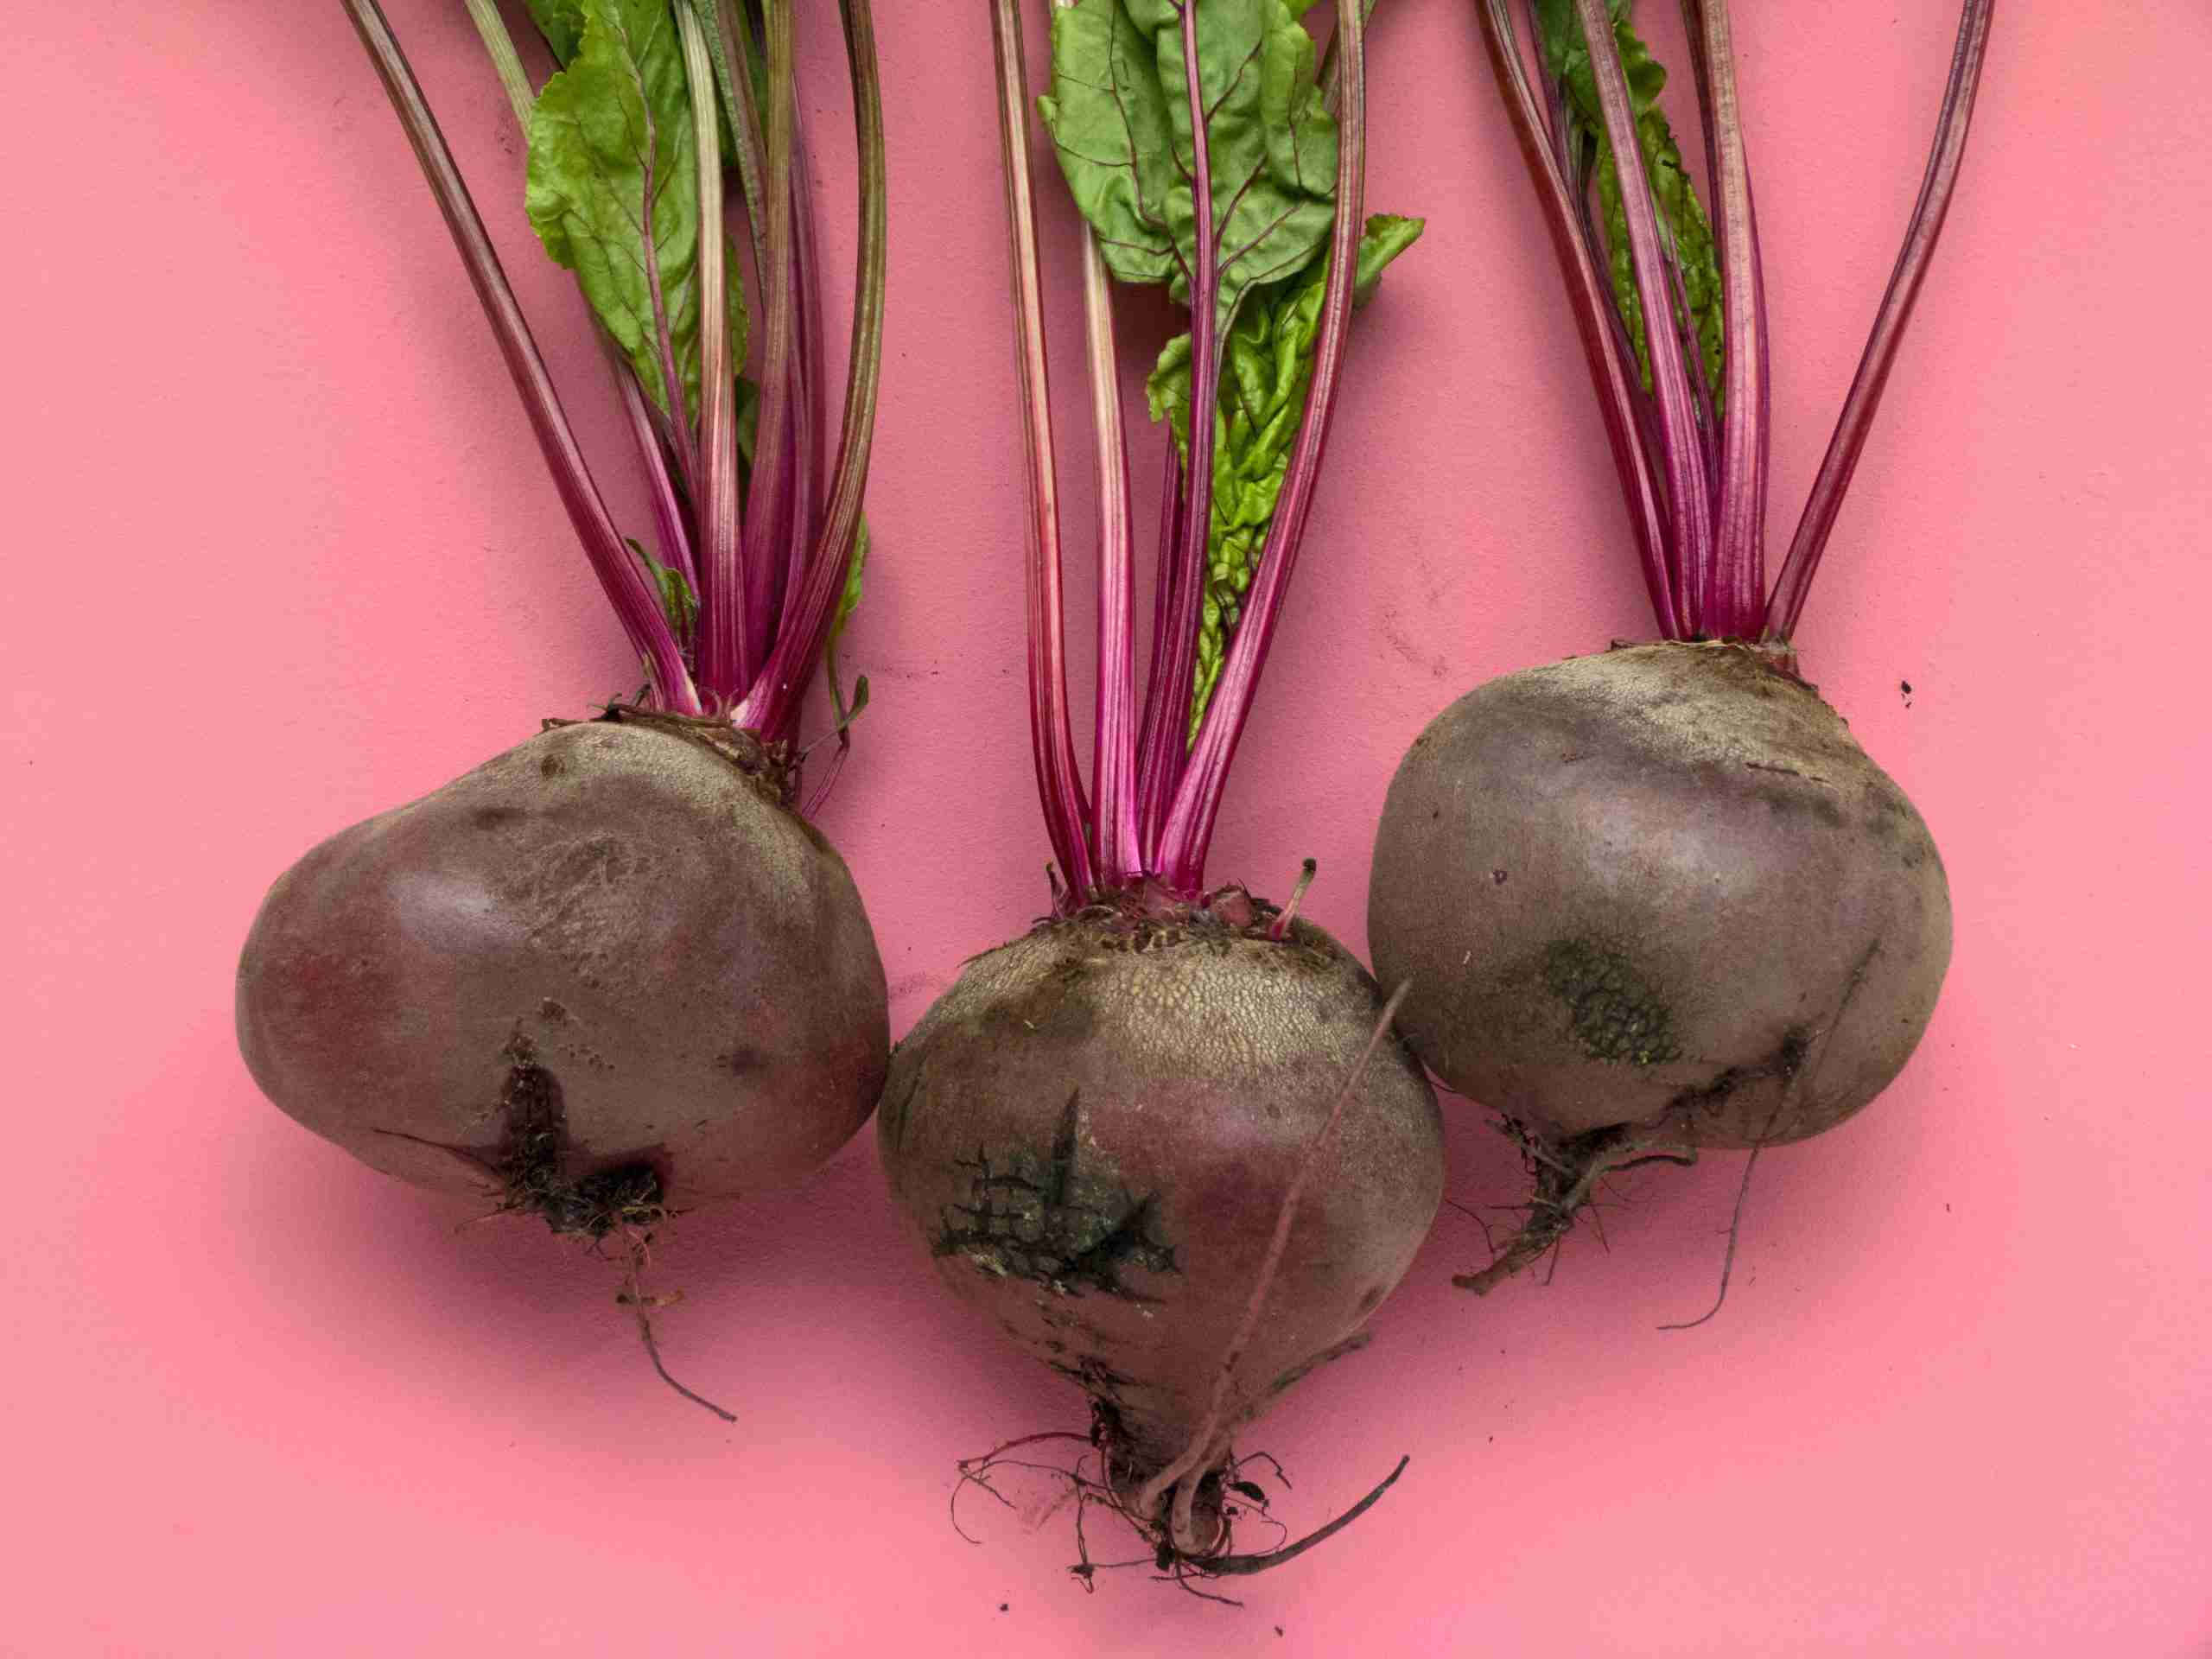 Beets have magnesium